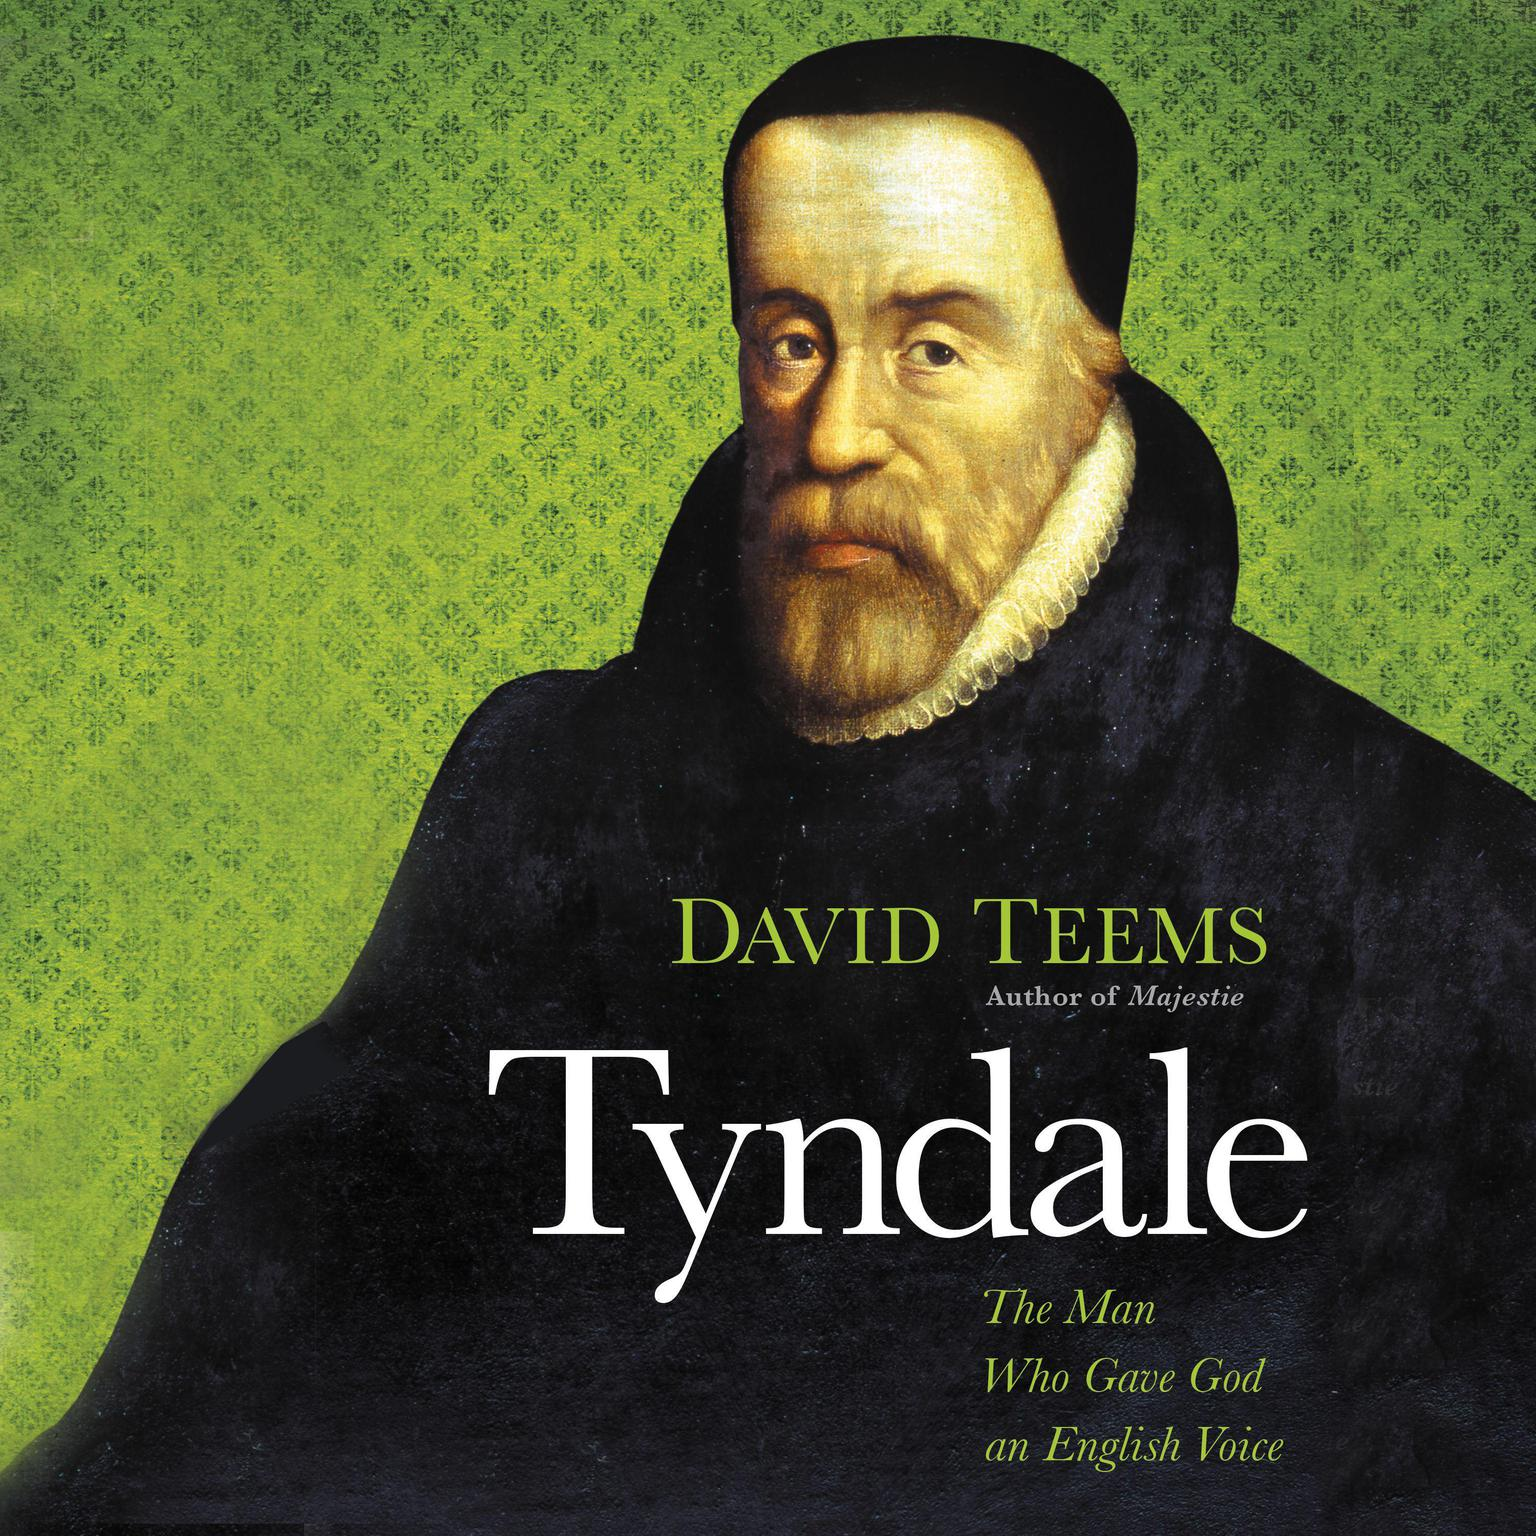 Tyndale: The Man Who Gave God an English Voice Audiobook, by David Teems